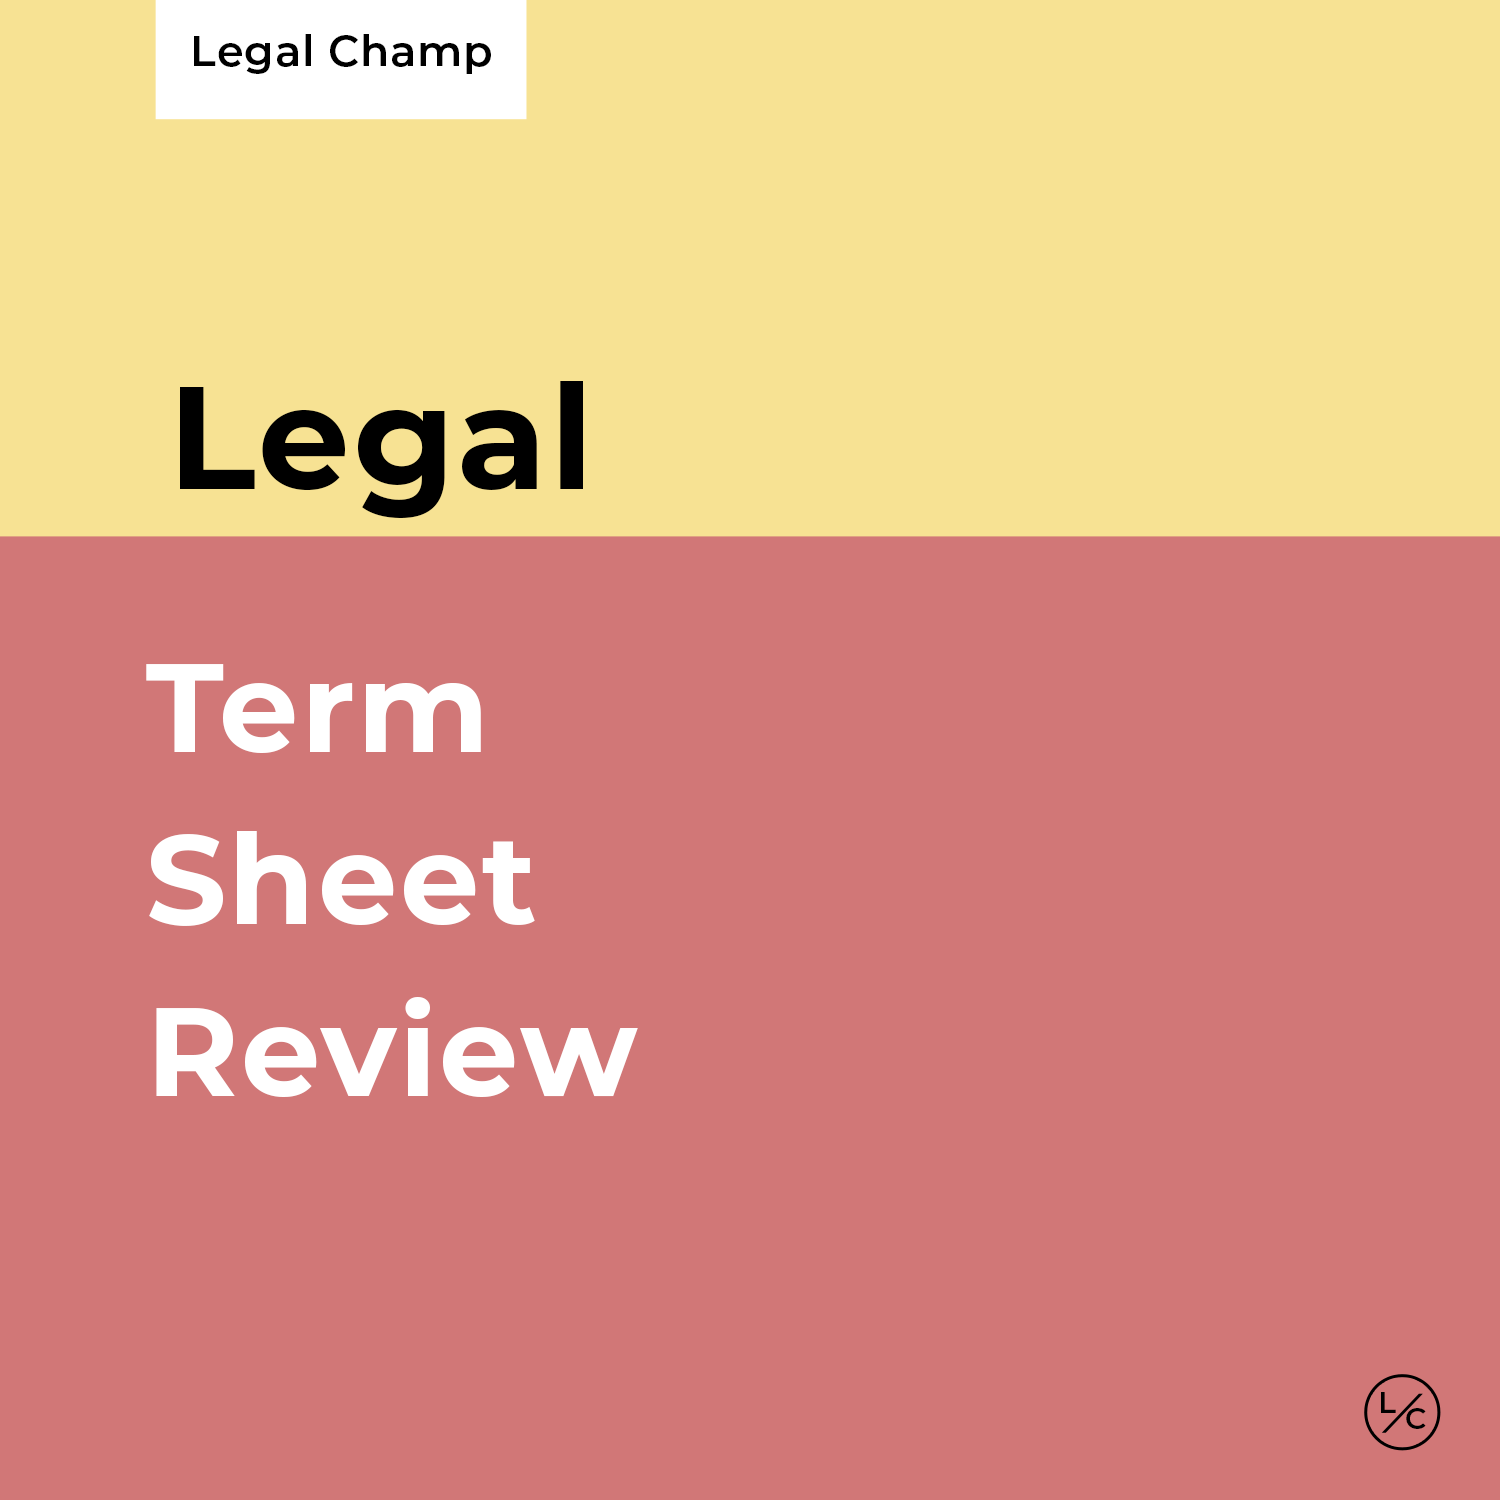 Term Sheet Review